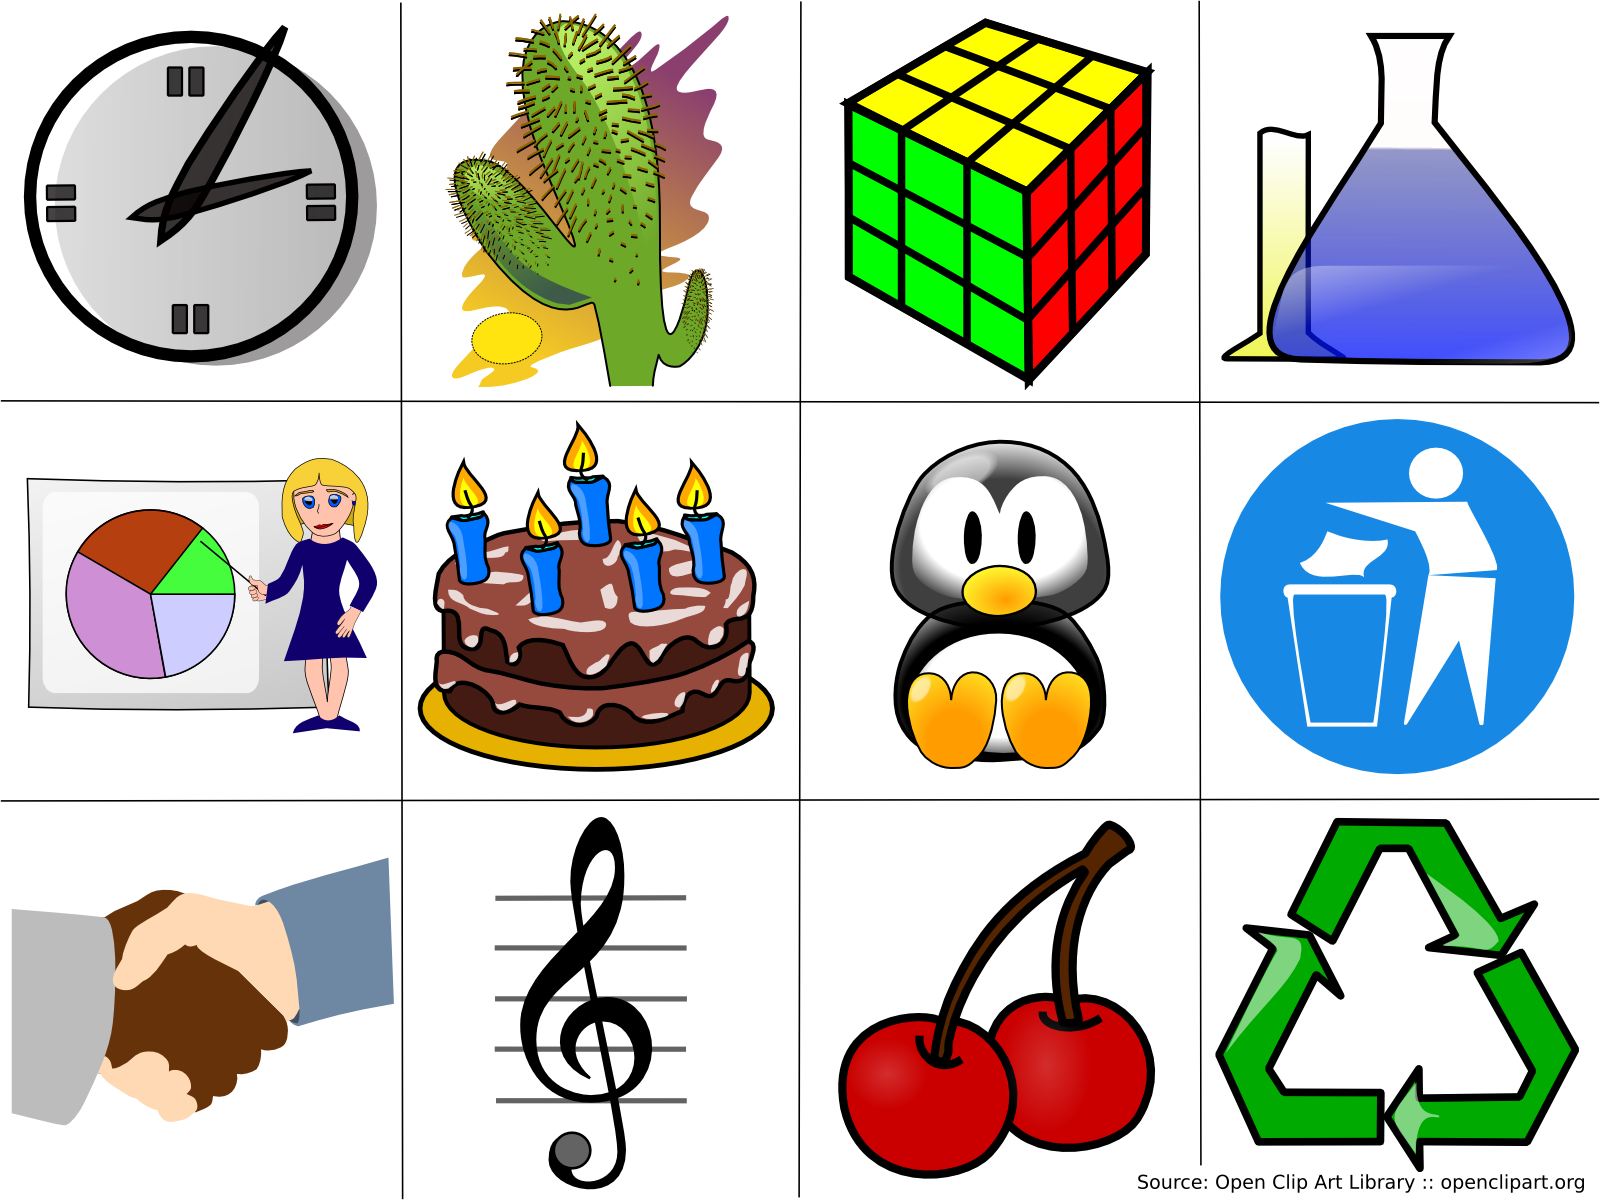 Clip art - Wikipedia, the free encyclope-Clip art - Wikipedia, the free encyclopedia-14